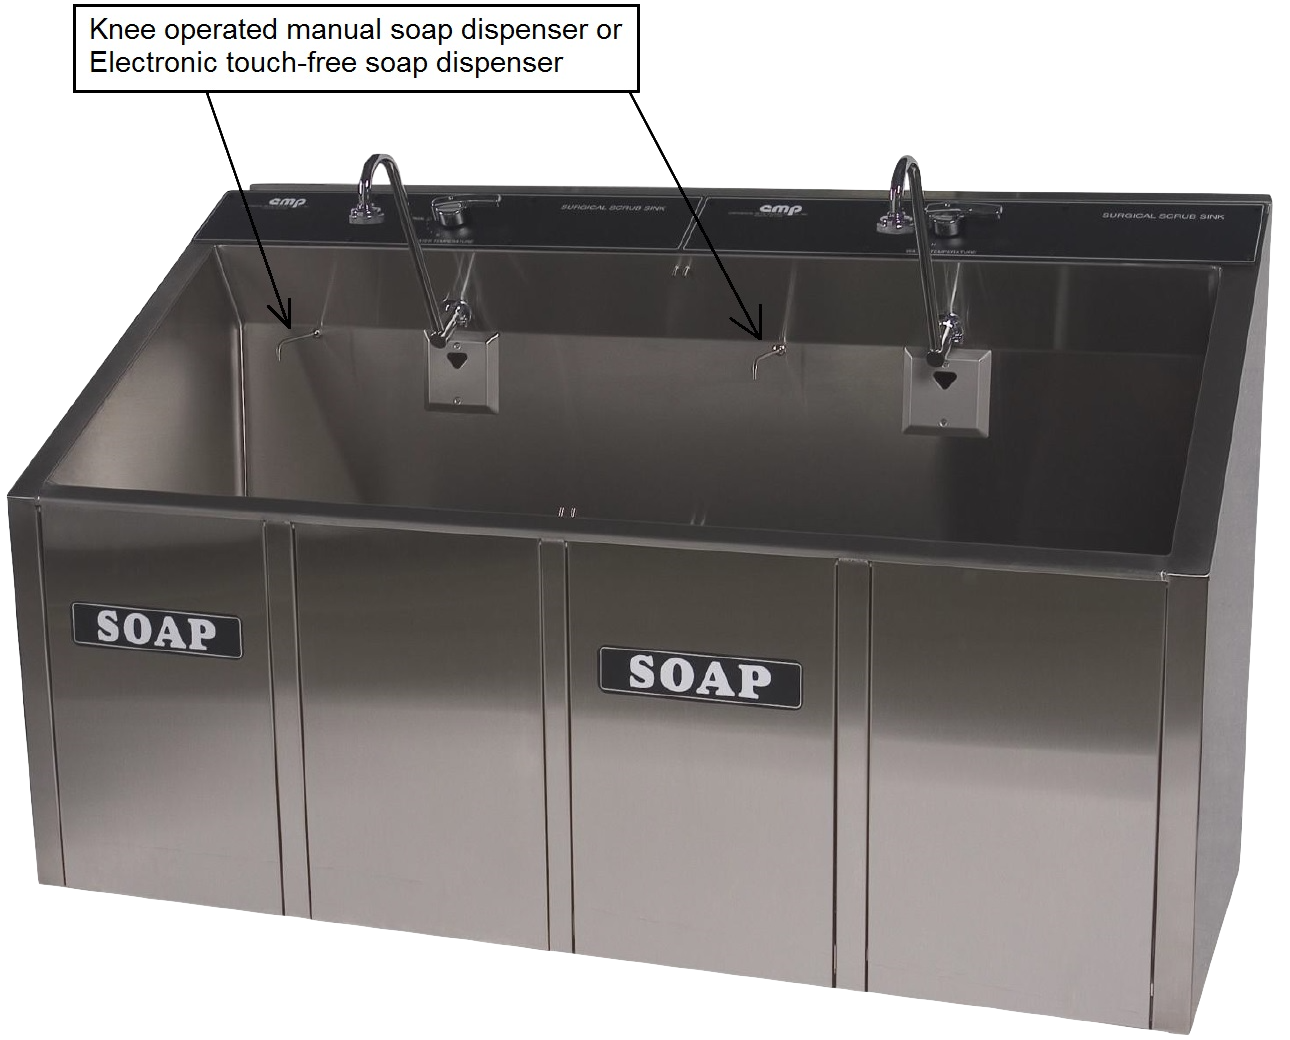 Surgical Scrub Sink In One, Two, Or Three Bay Sizes Automatic, Knee  Operated, Or Electronic Sensor From CMP